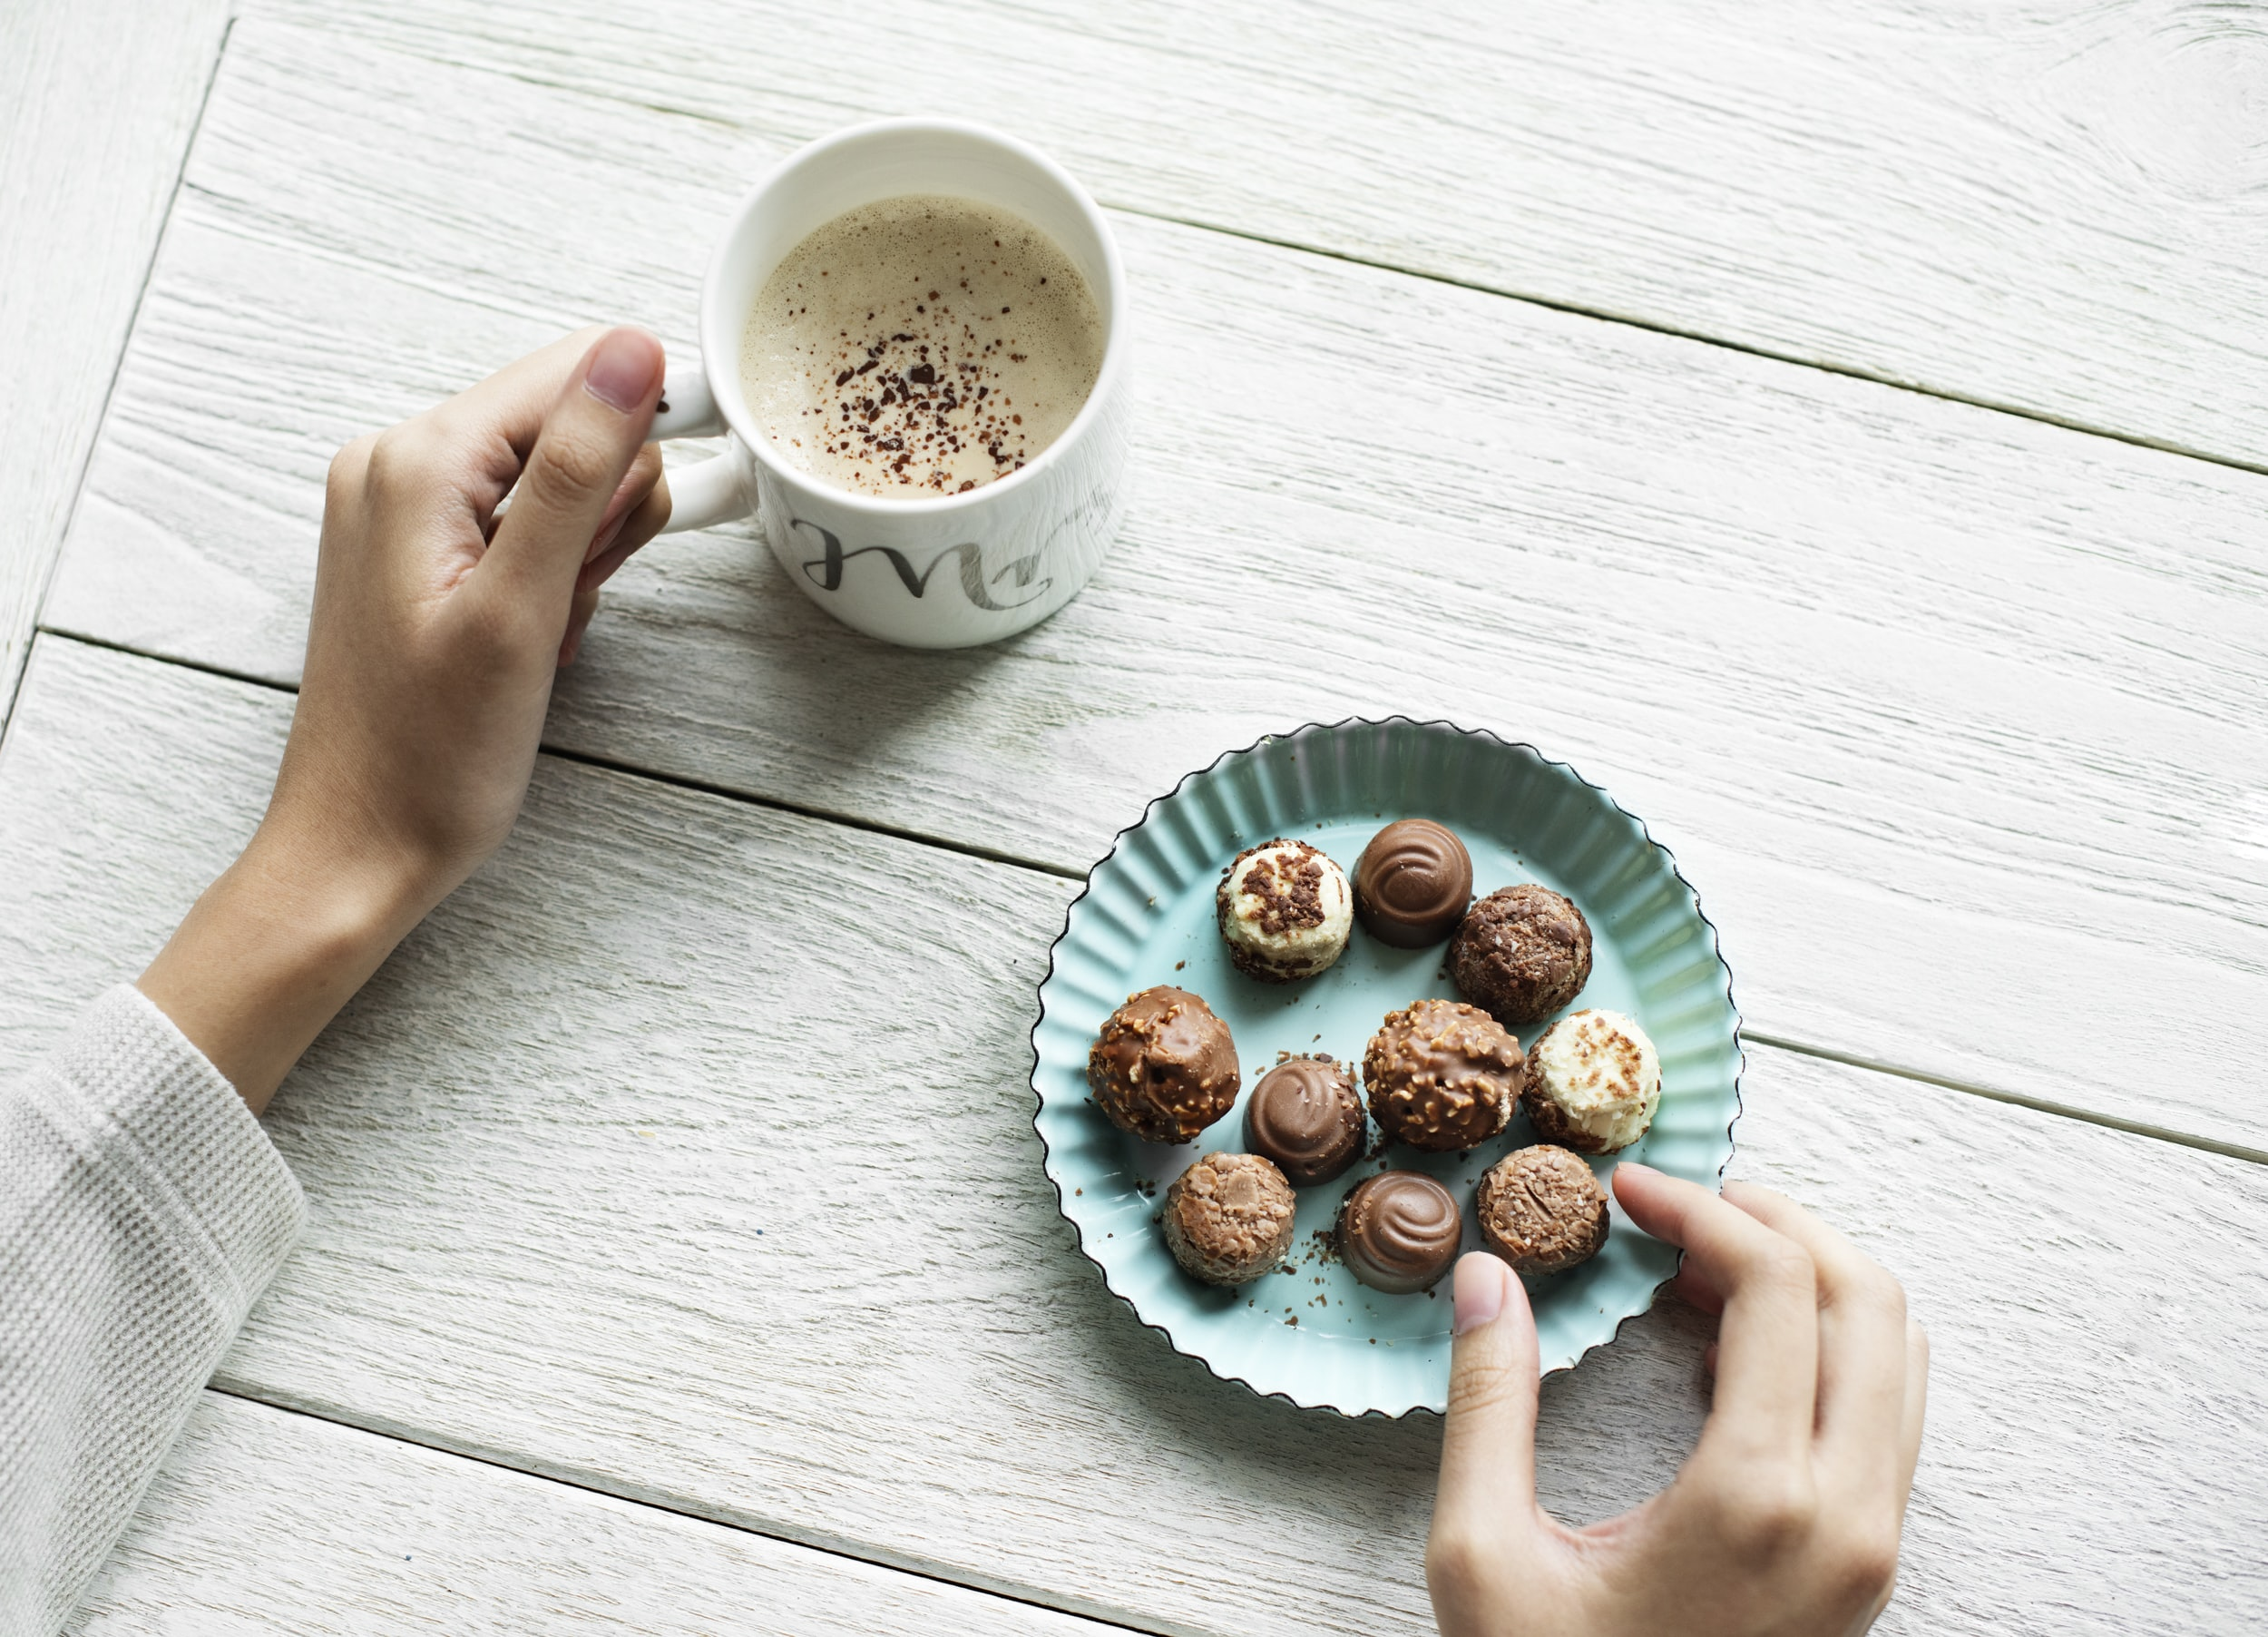 person picking up chocolate on saucer and holding mug filled with beverage